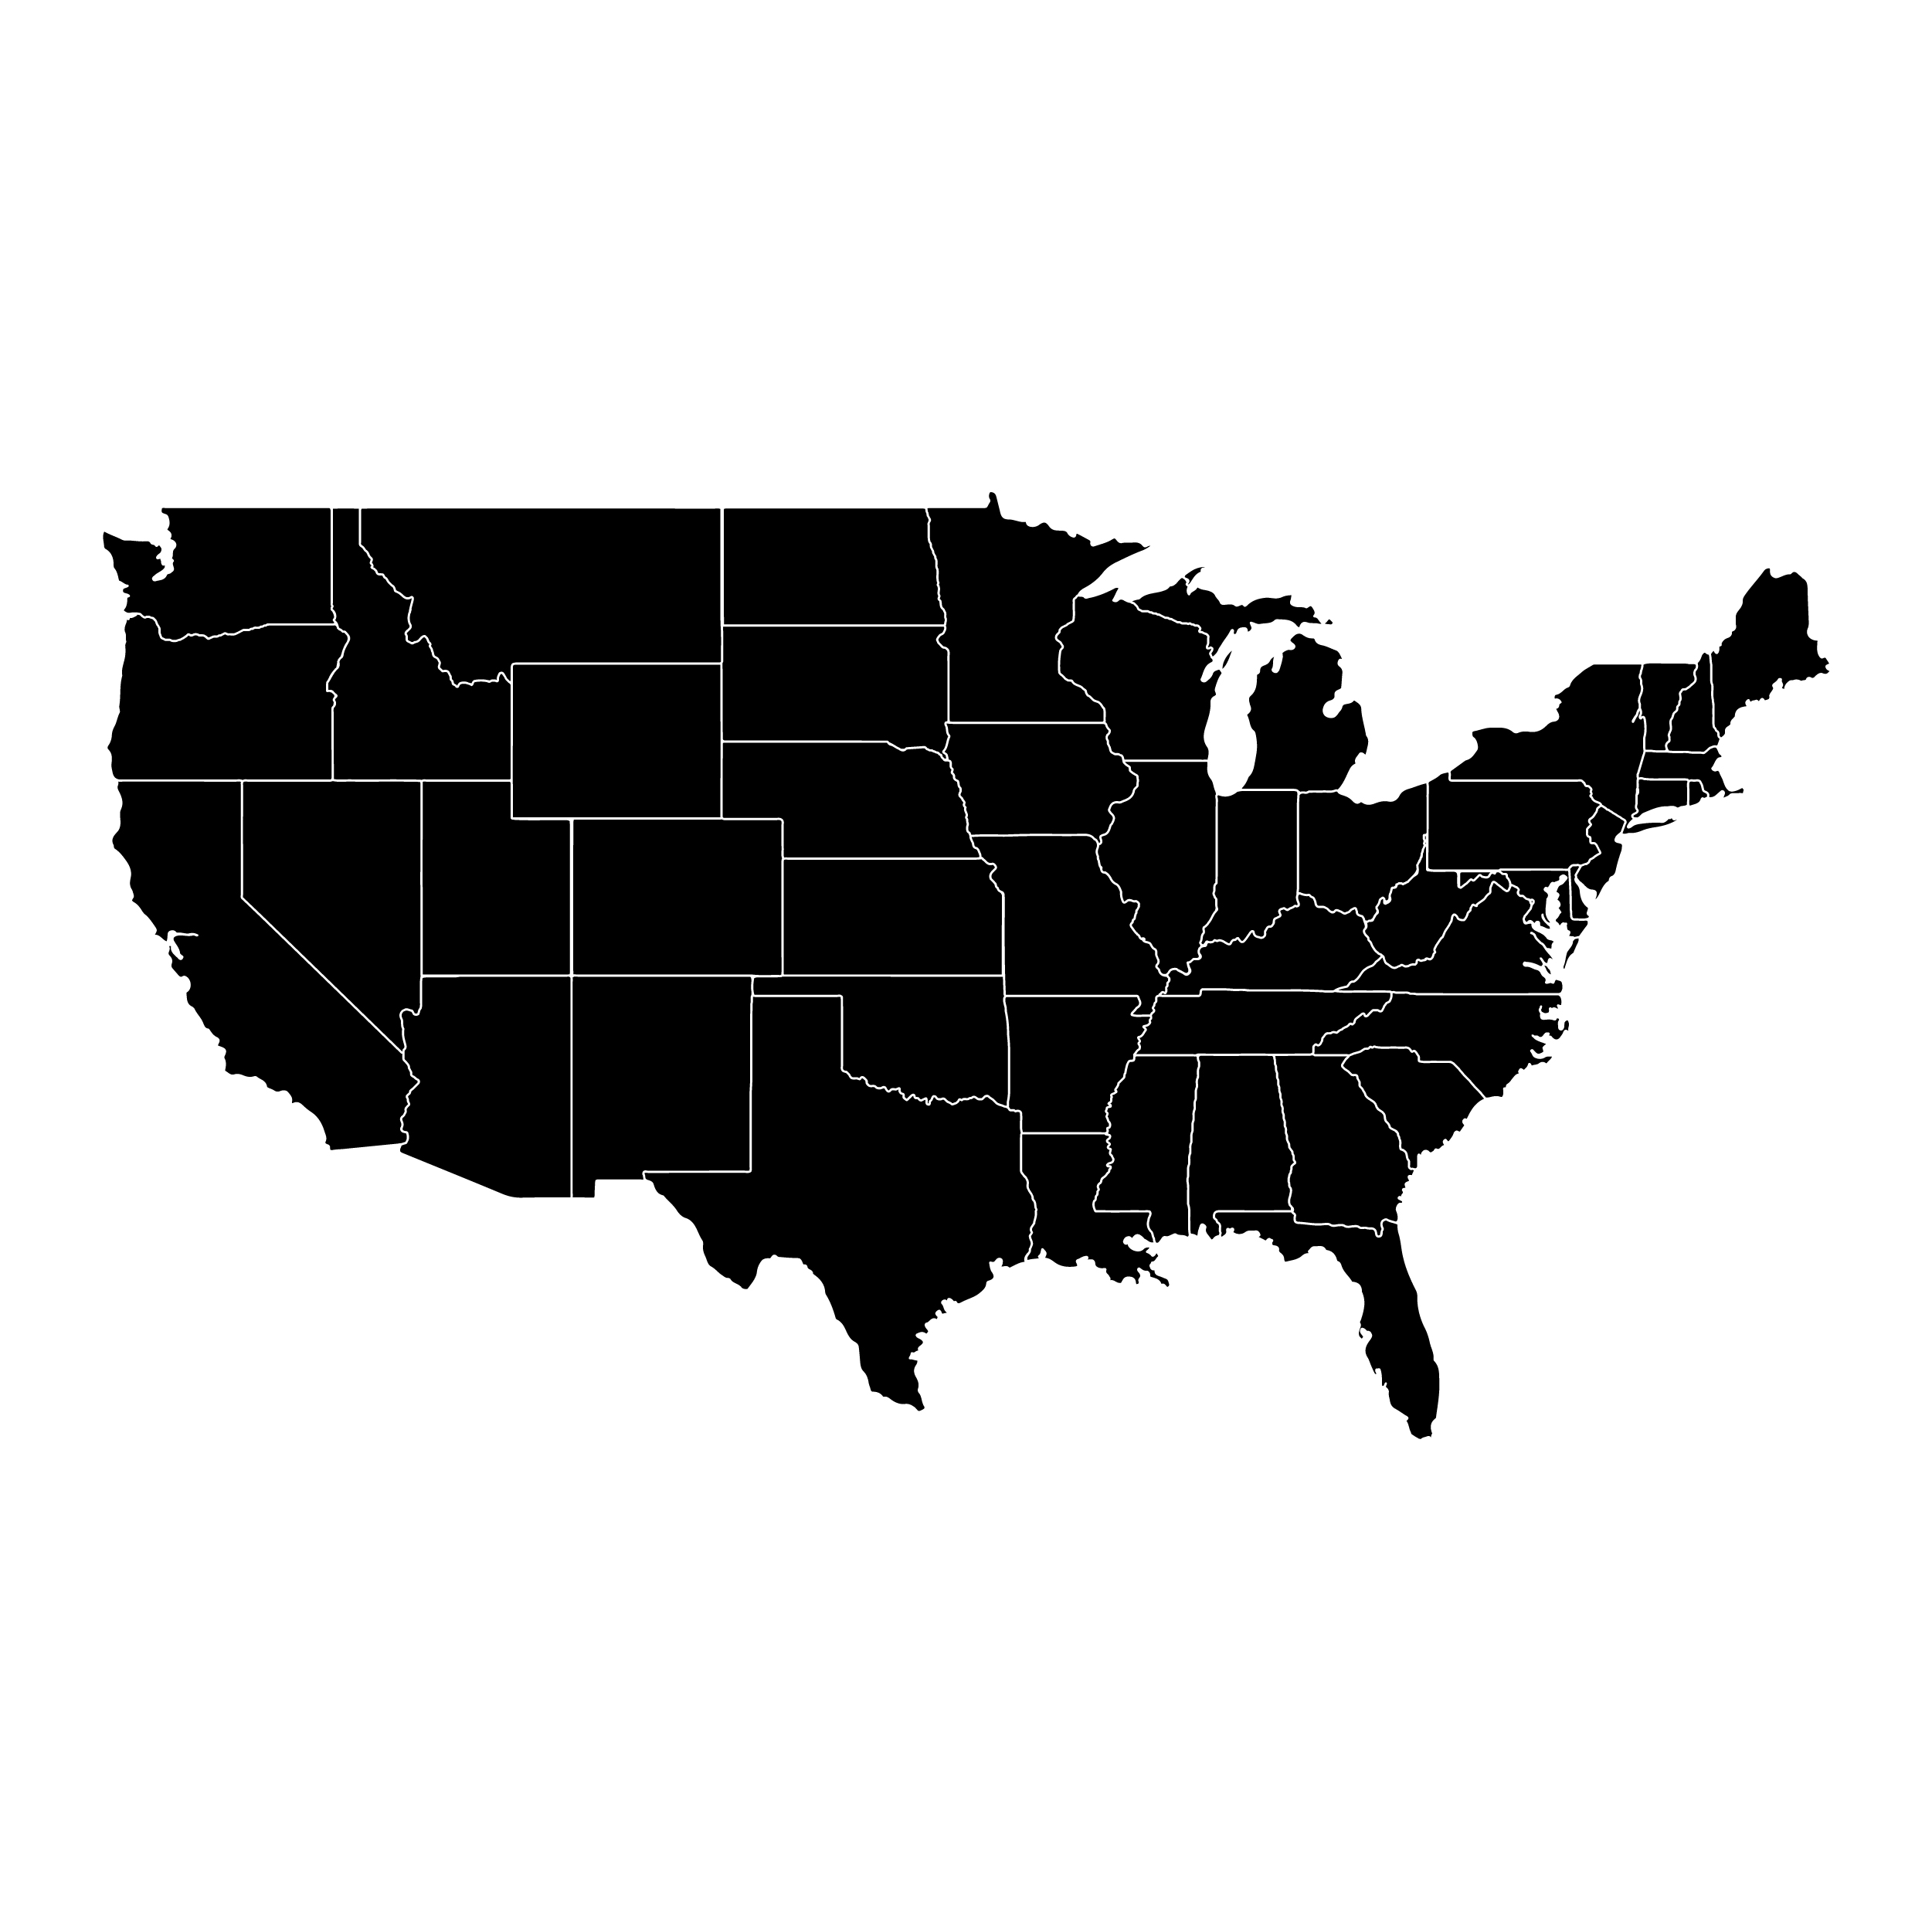 states-outlines-silhouette-vector [Converted]-03